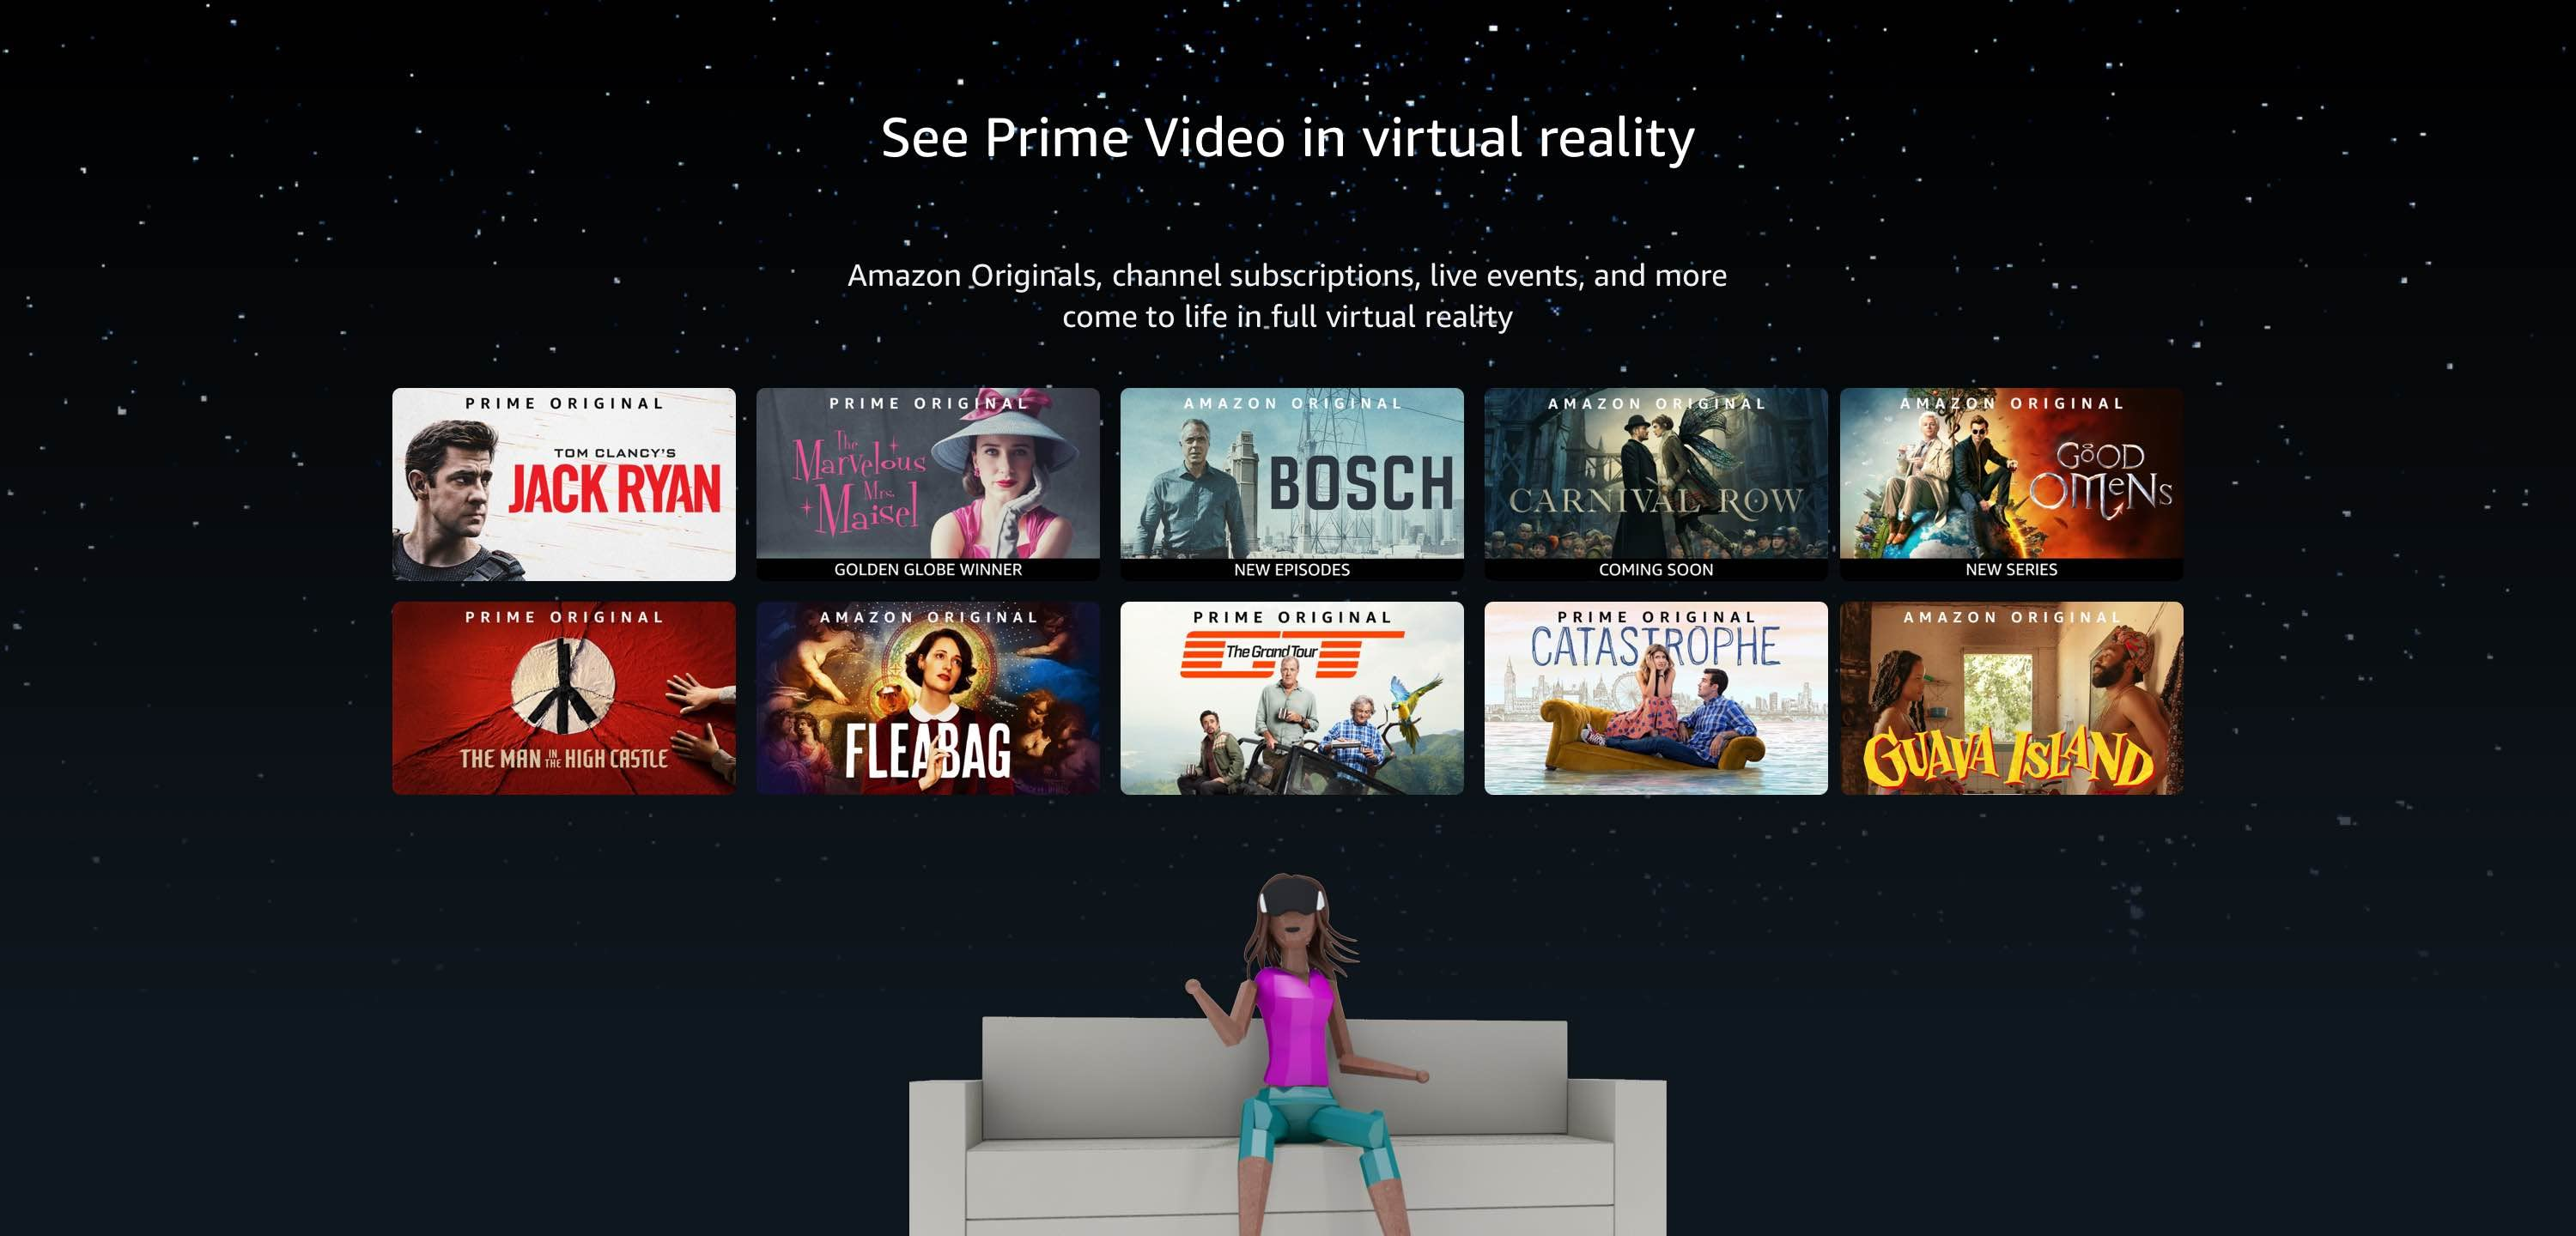 See Prime Video in virtual reality